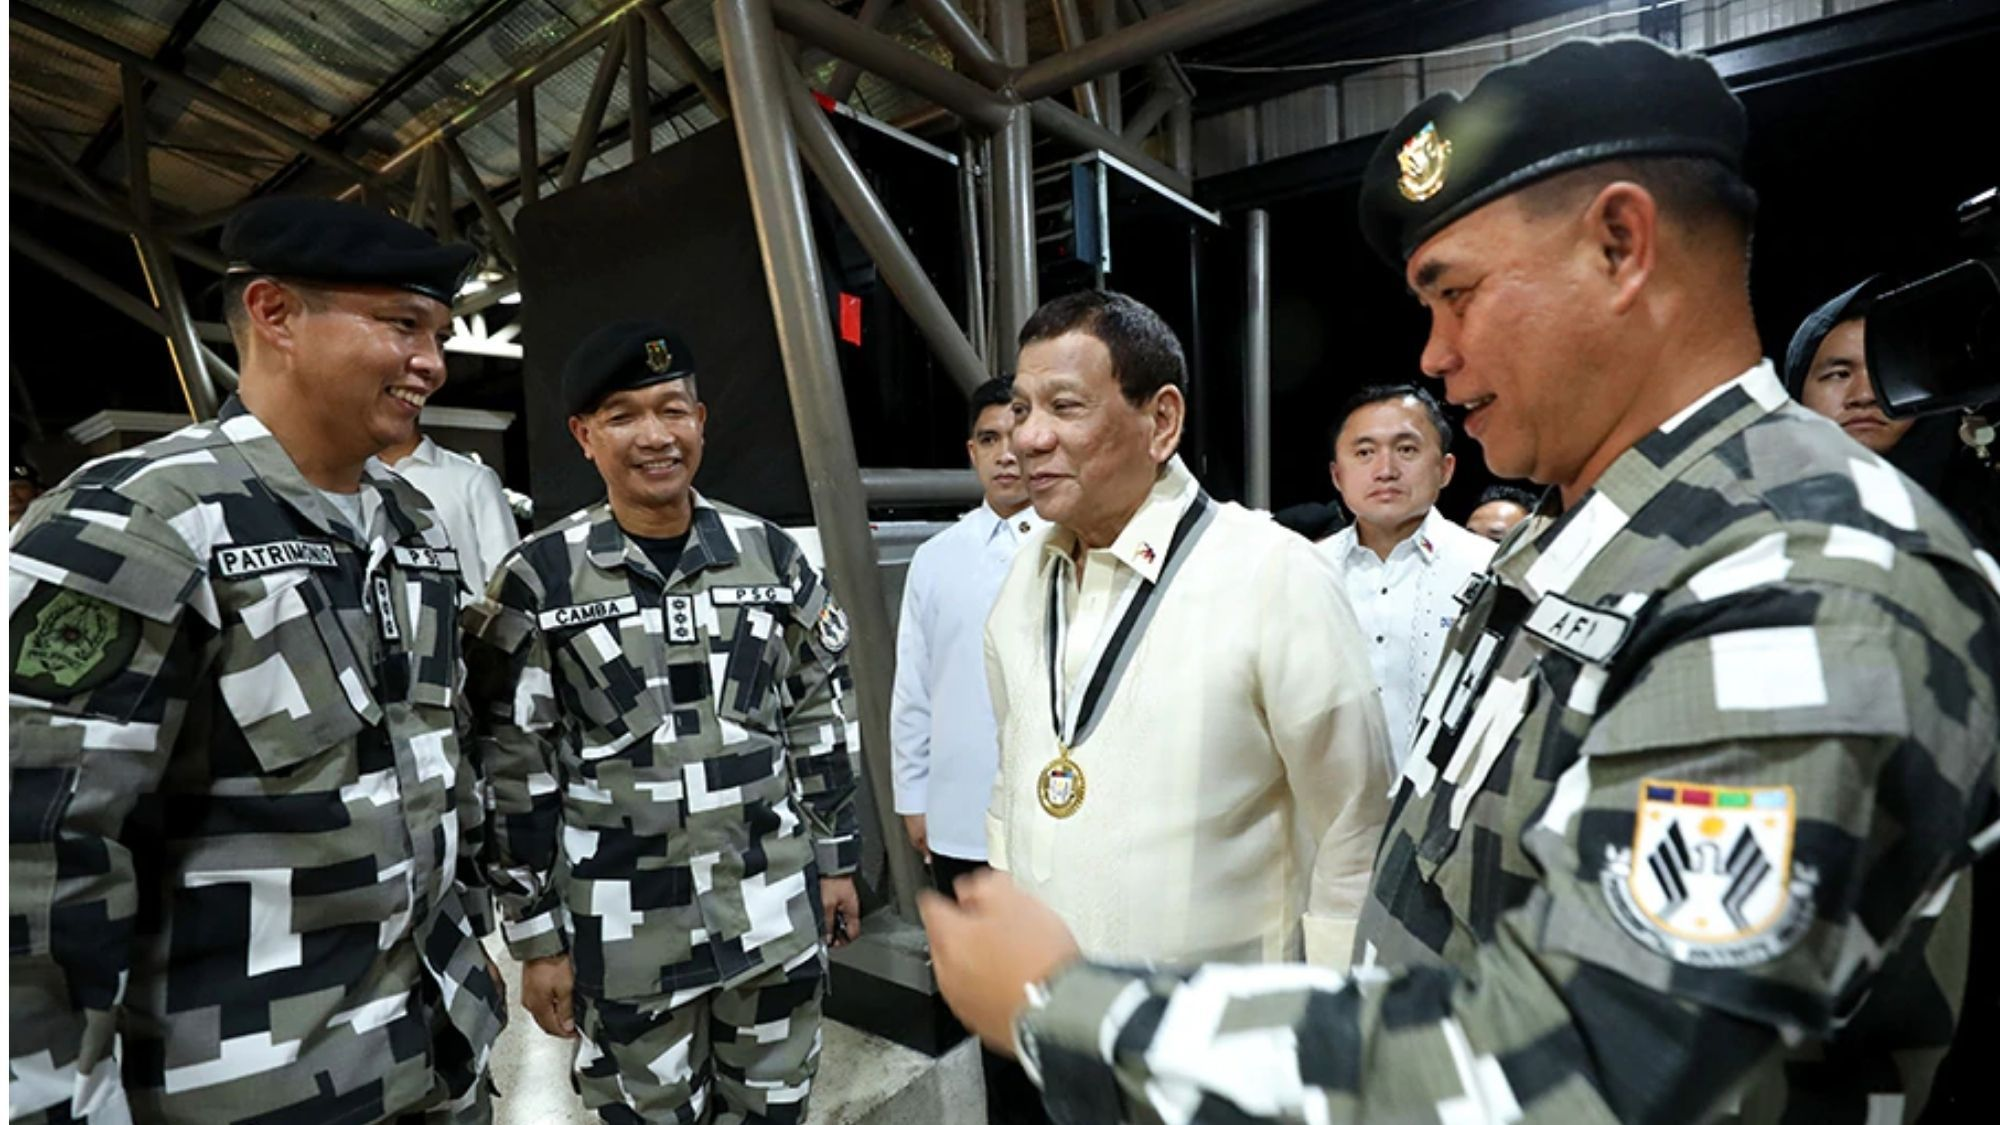 126 PSG men contract Covid-19; prompts Digong to make himself scarce